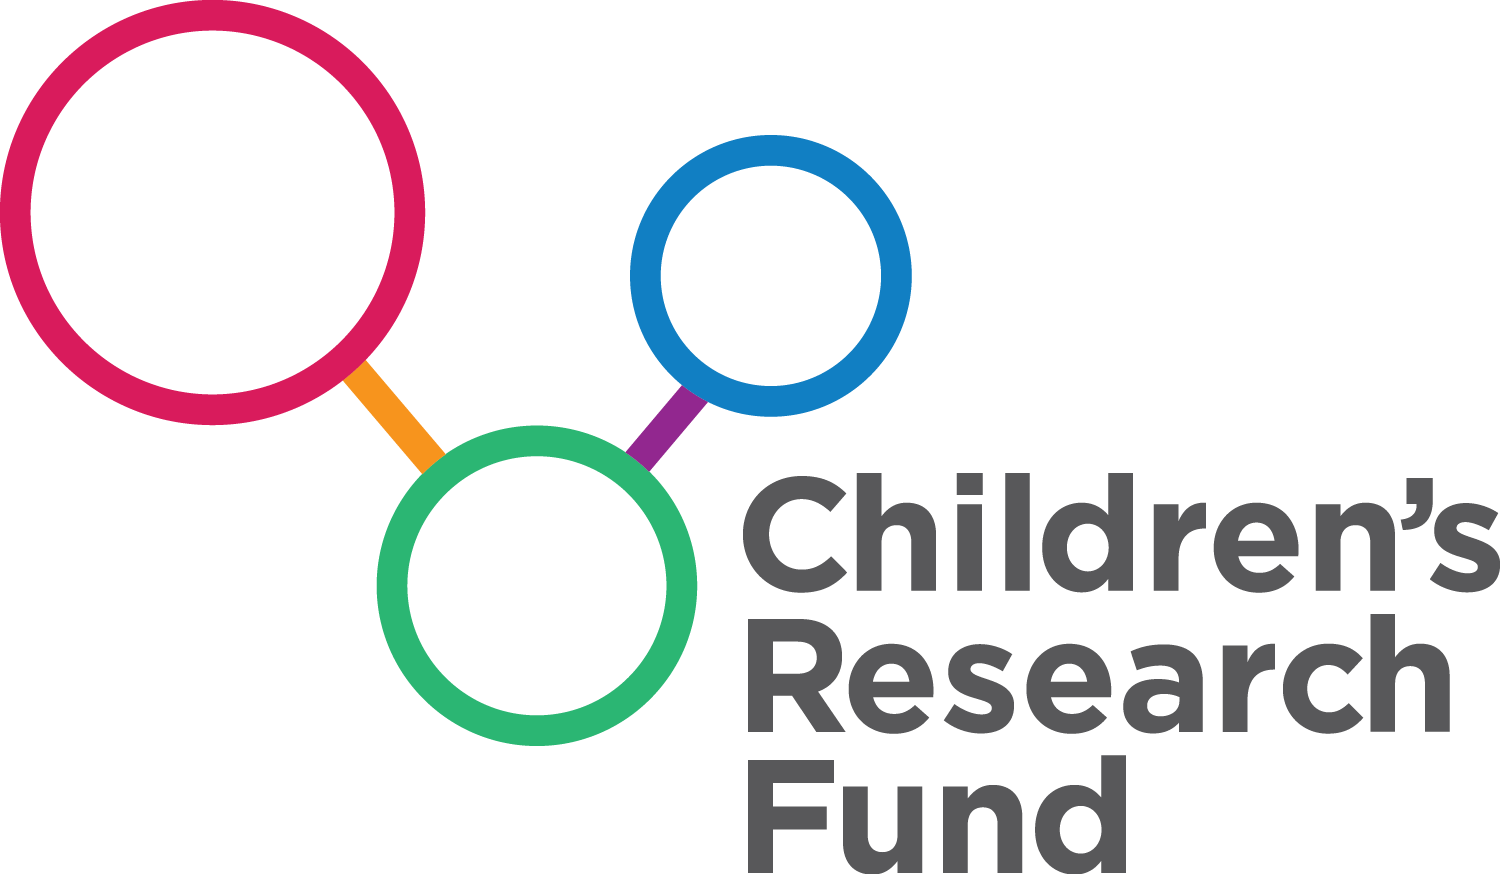 Children's Research Fund